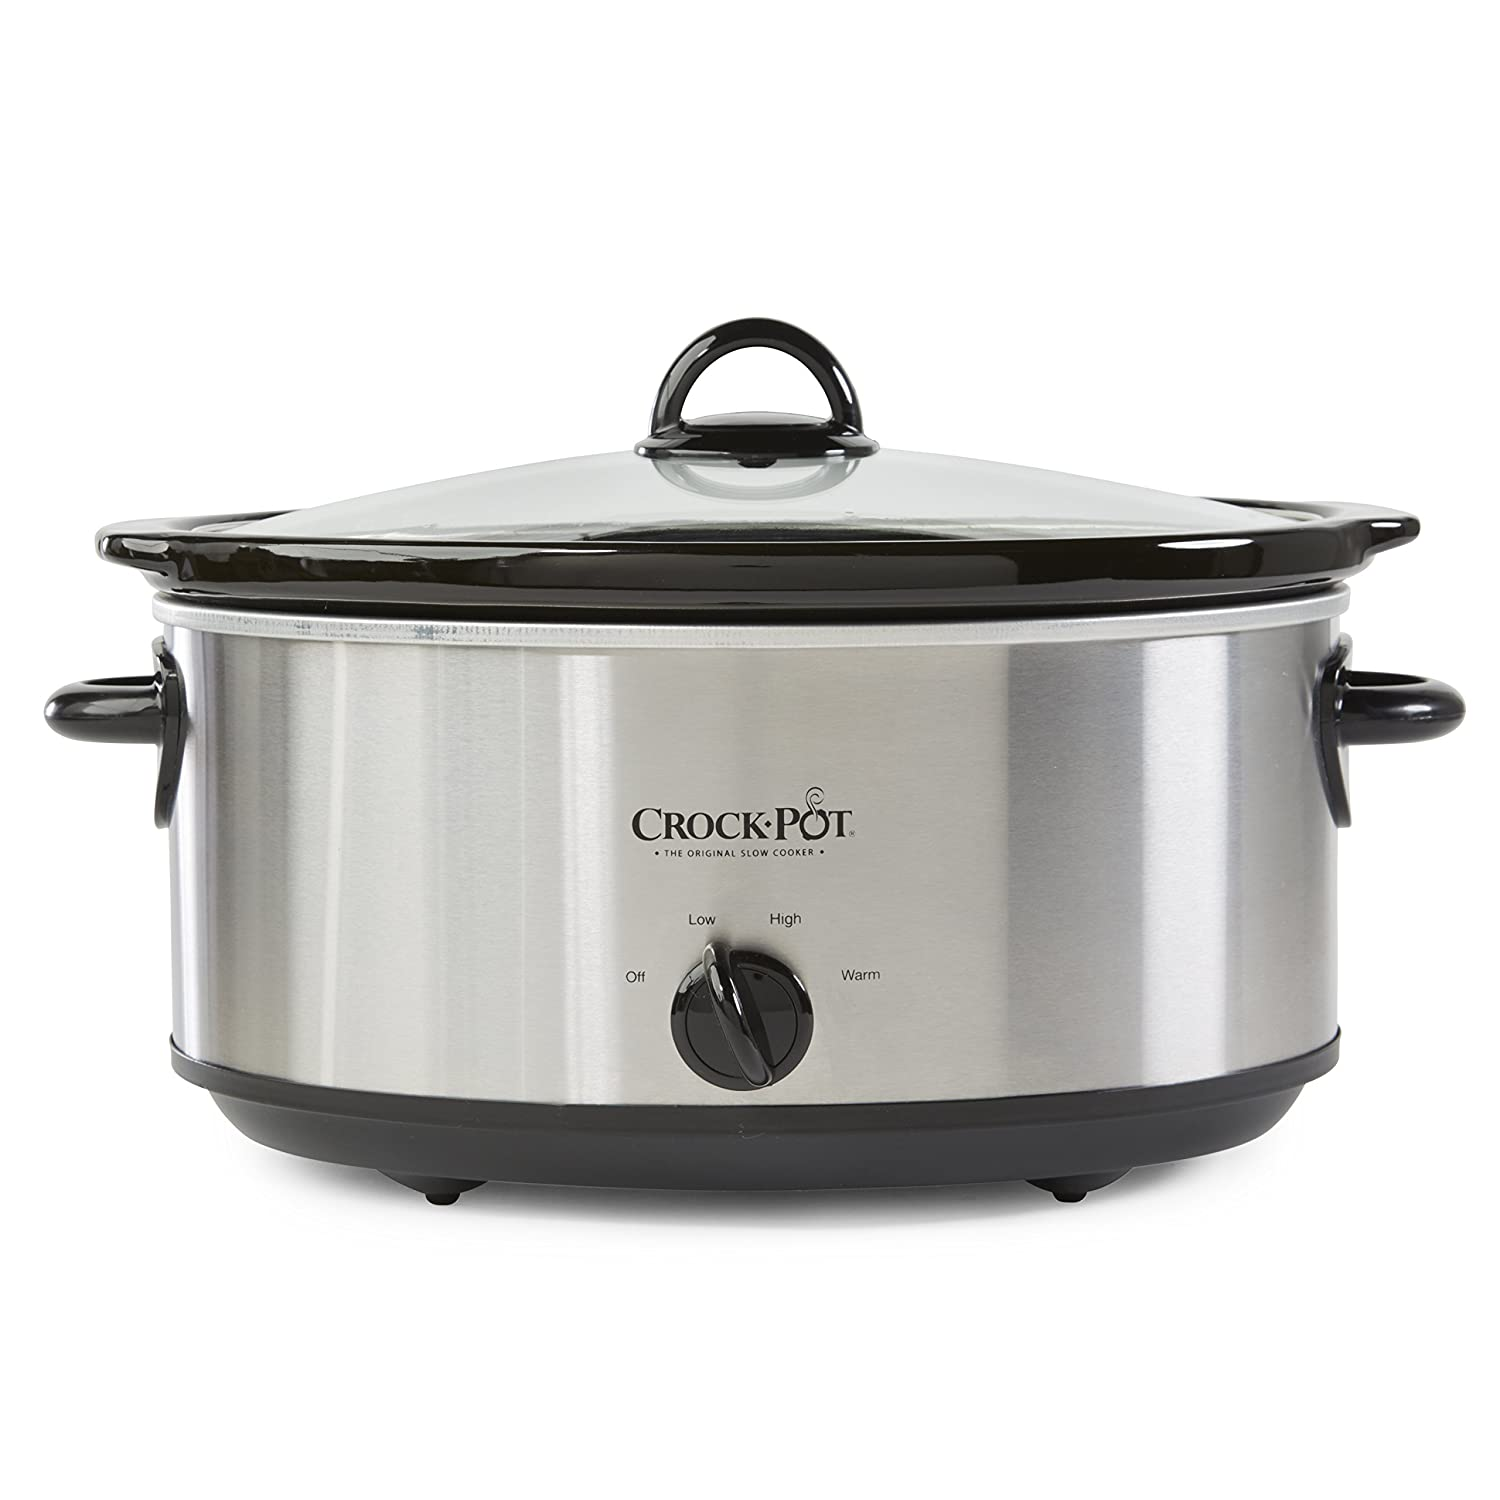 Crock-Pot SCV700SS Stainless Steel 7-Quart Oval Manual Slow Cooker, 7 Quart Crockpot SCV700-SS